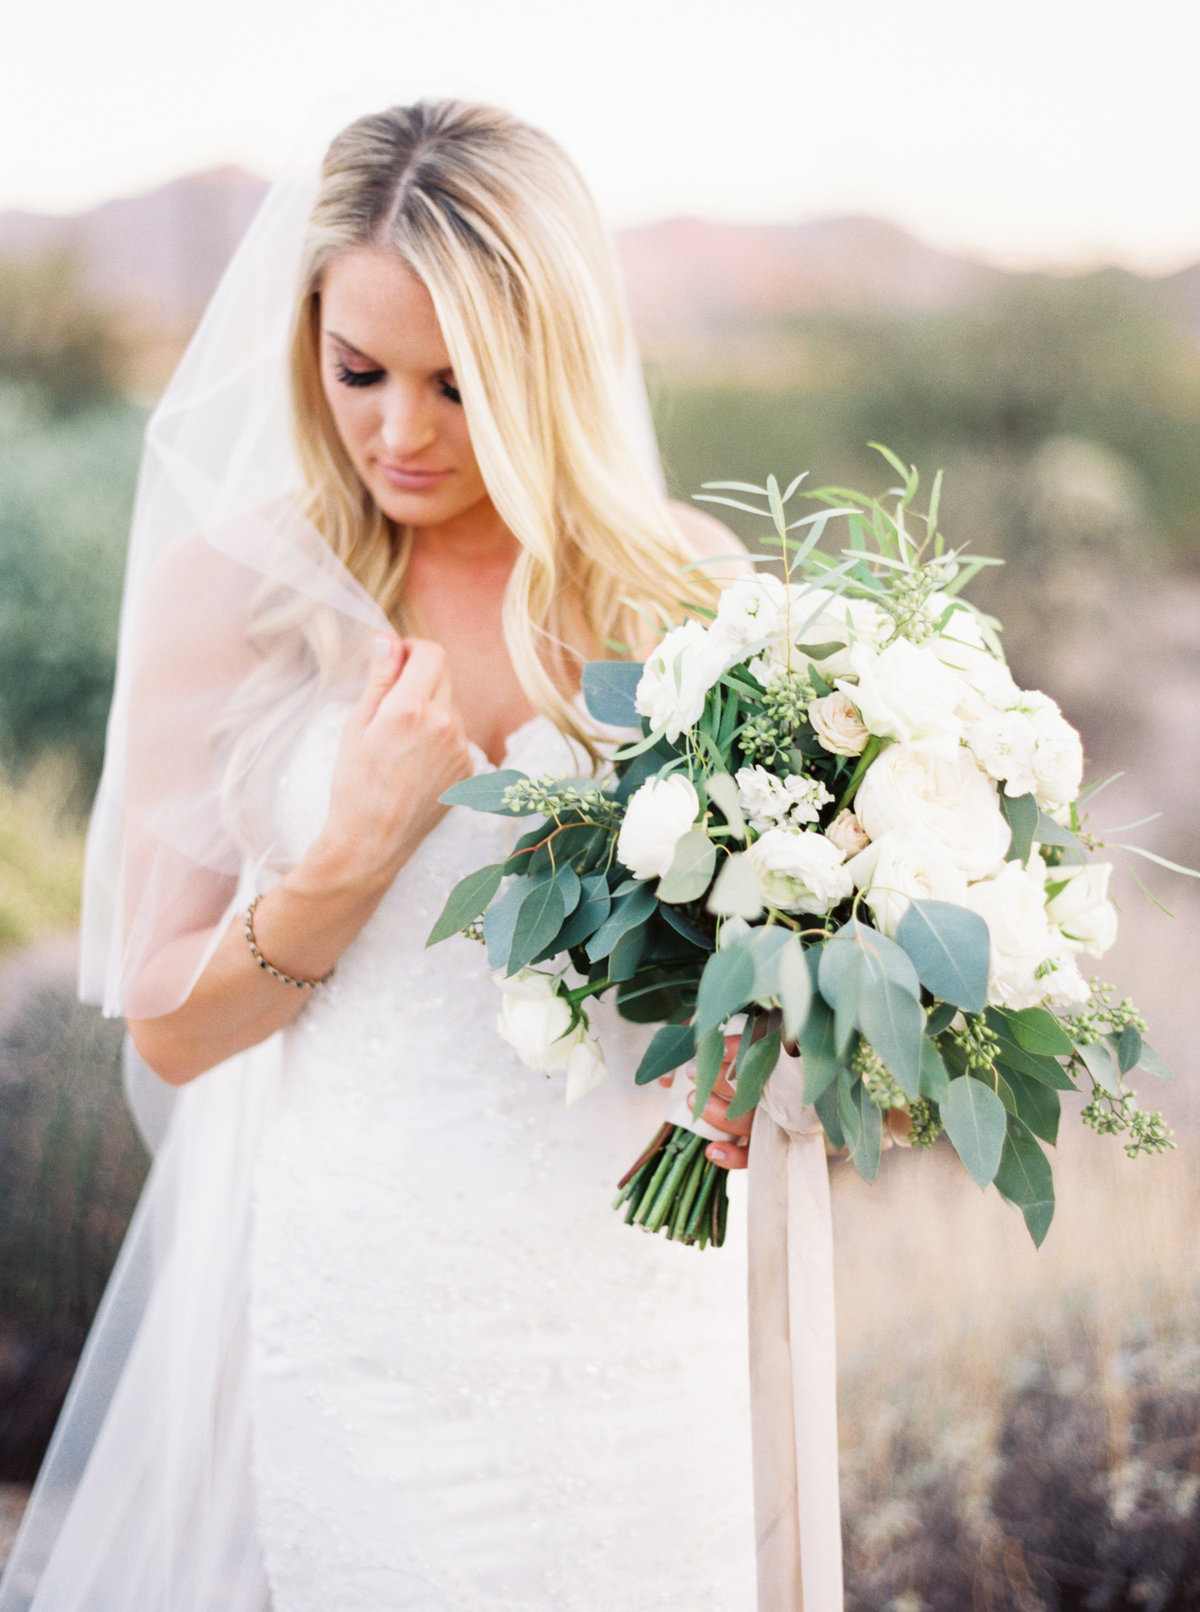 Sassi Scottsdale Arizona Wedding - Mary Claire Photography-10